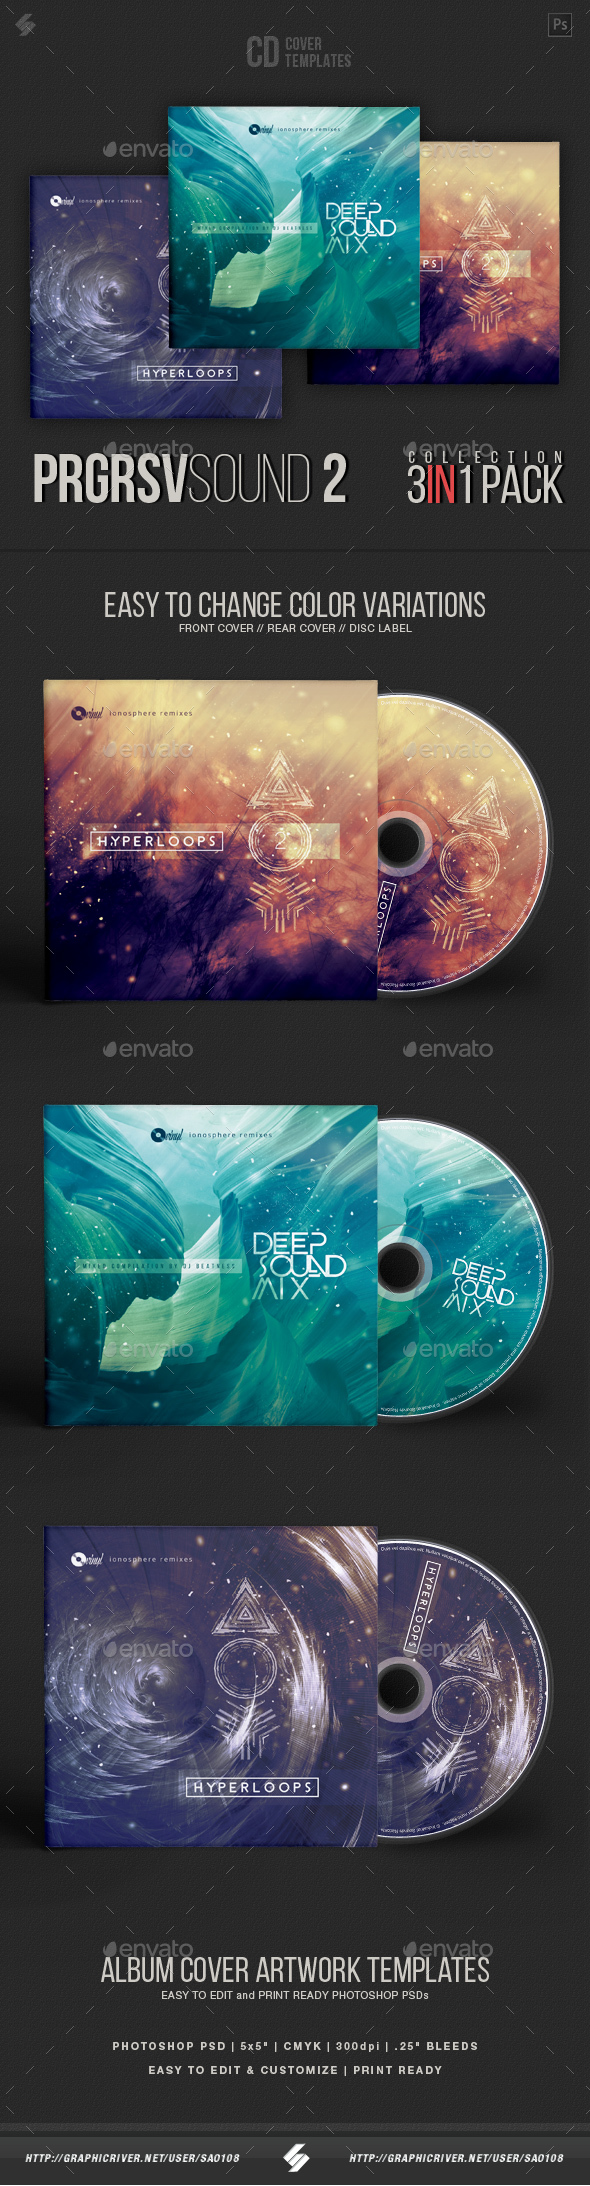 GraphicRiver Progressive Sound Collection 2 CD Cover Artwork Templates Bundle 20967691